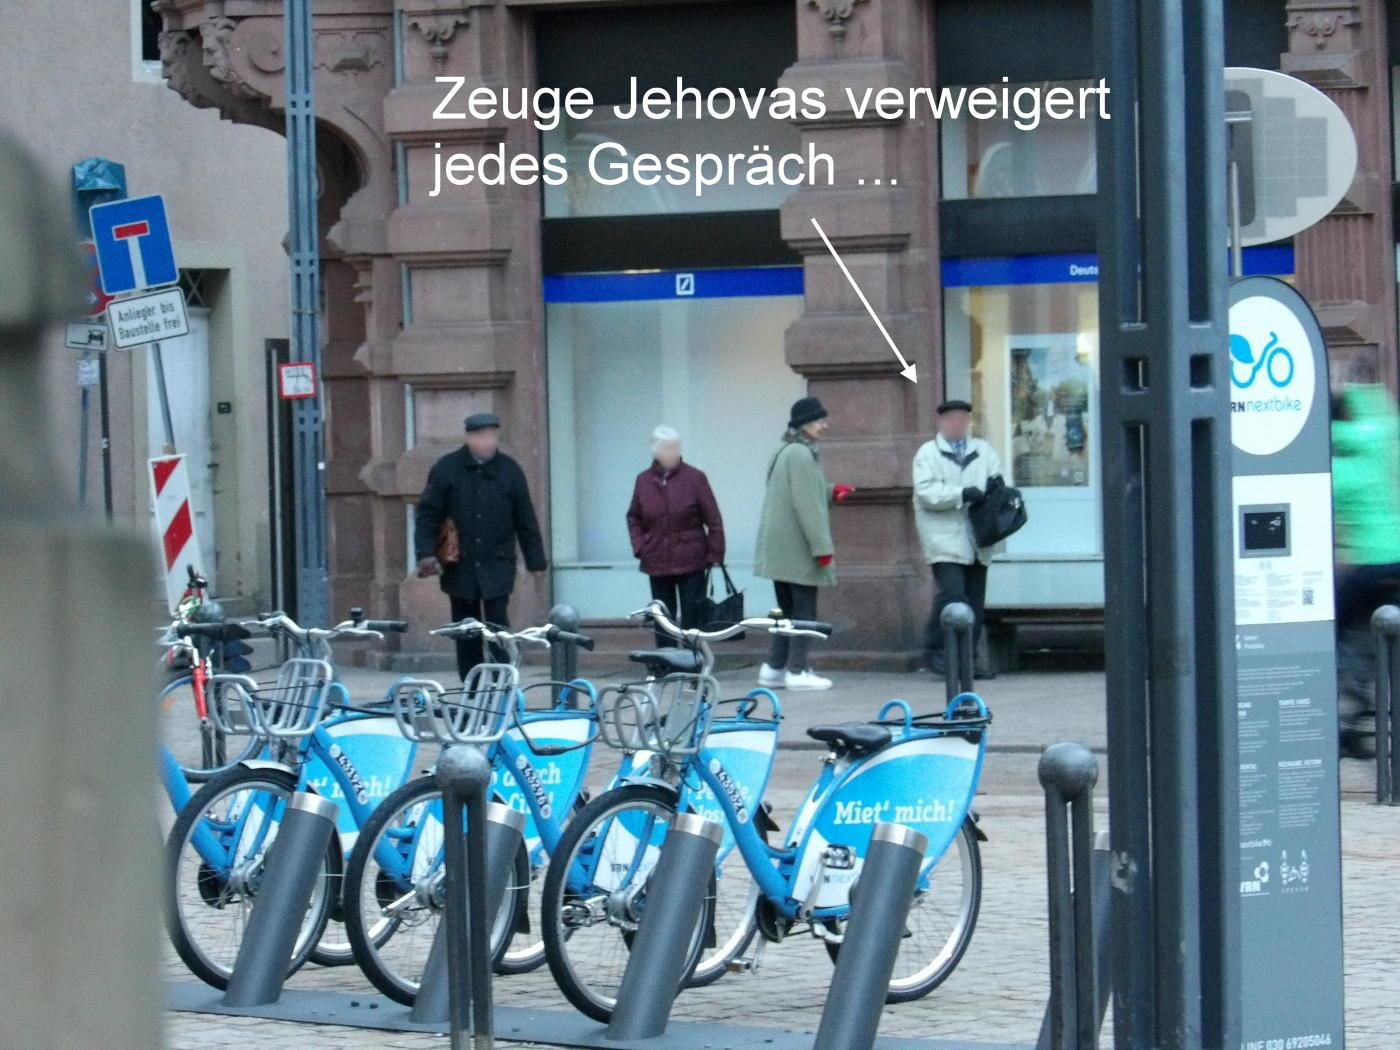 Jehovah's world domination begins in Speyer